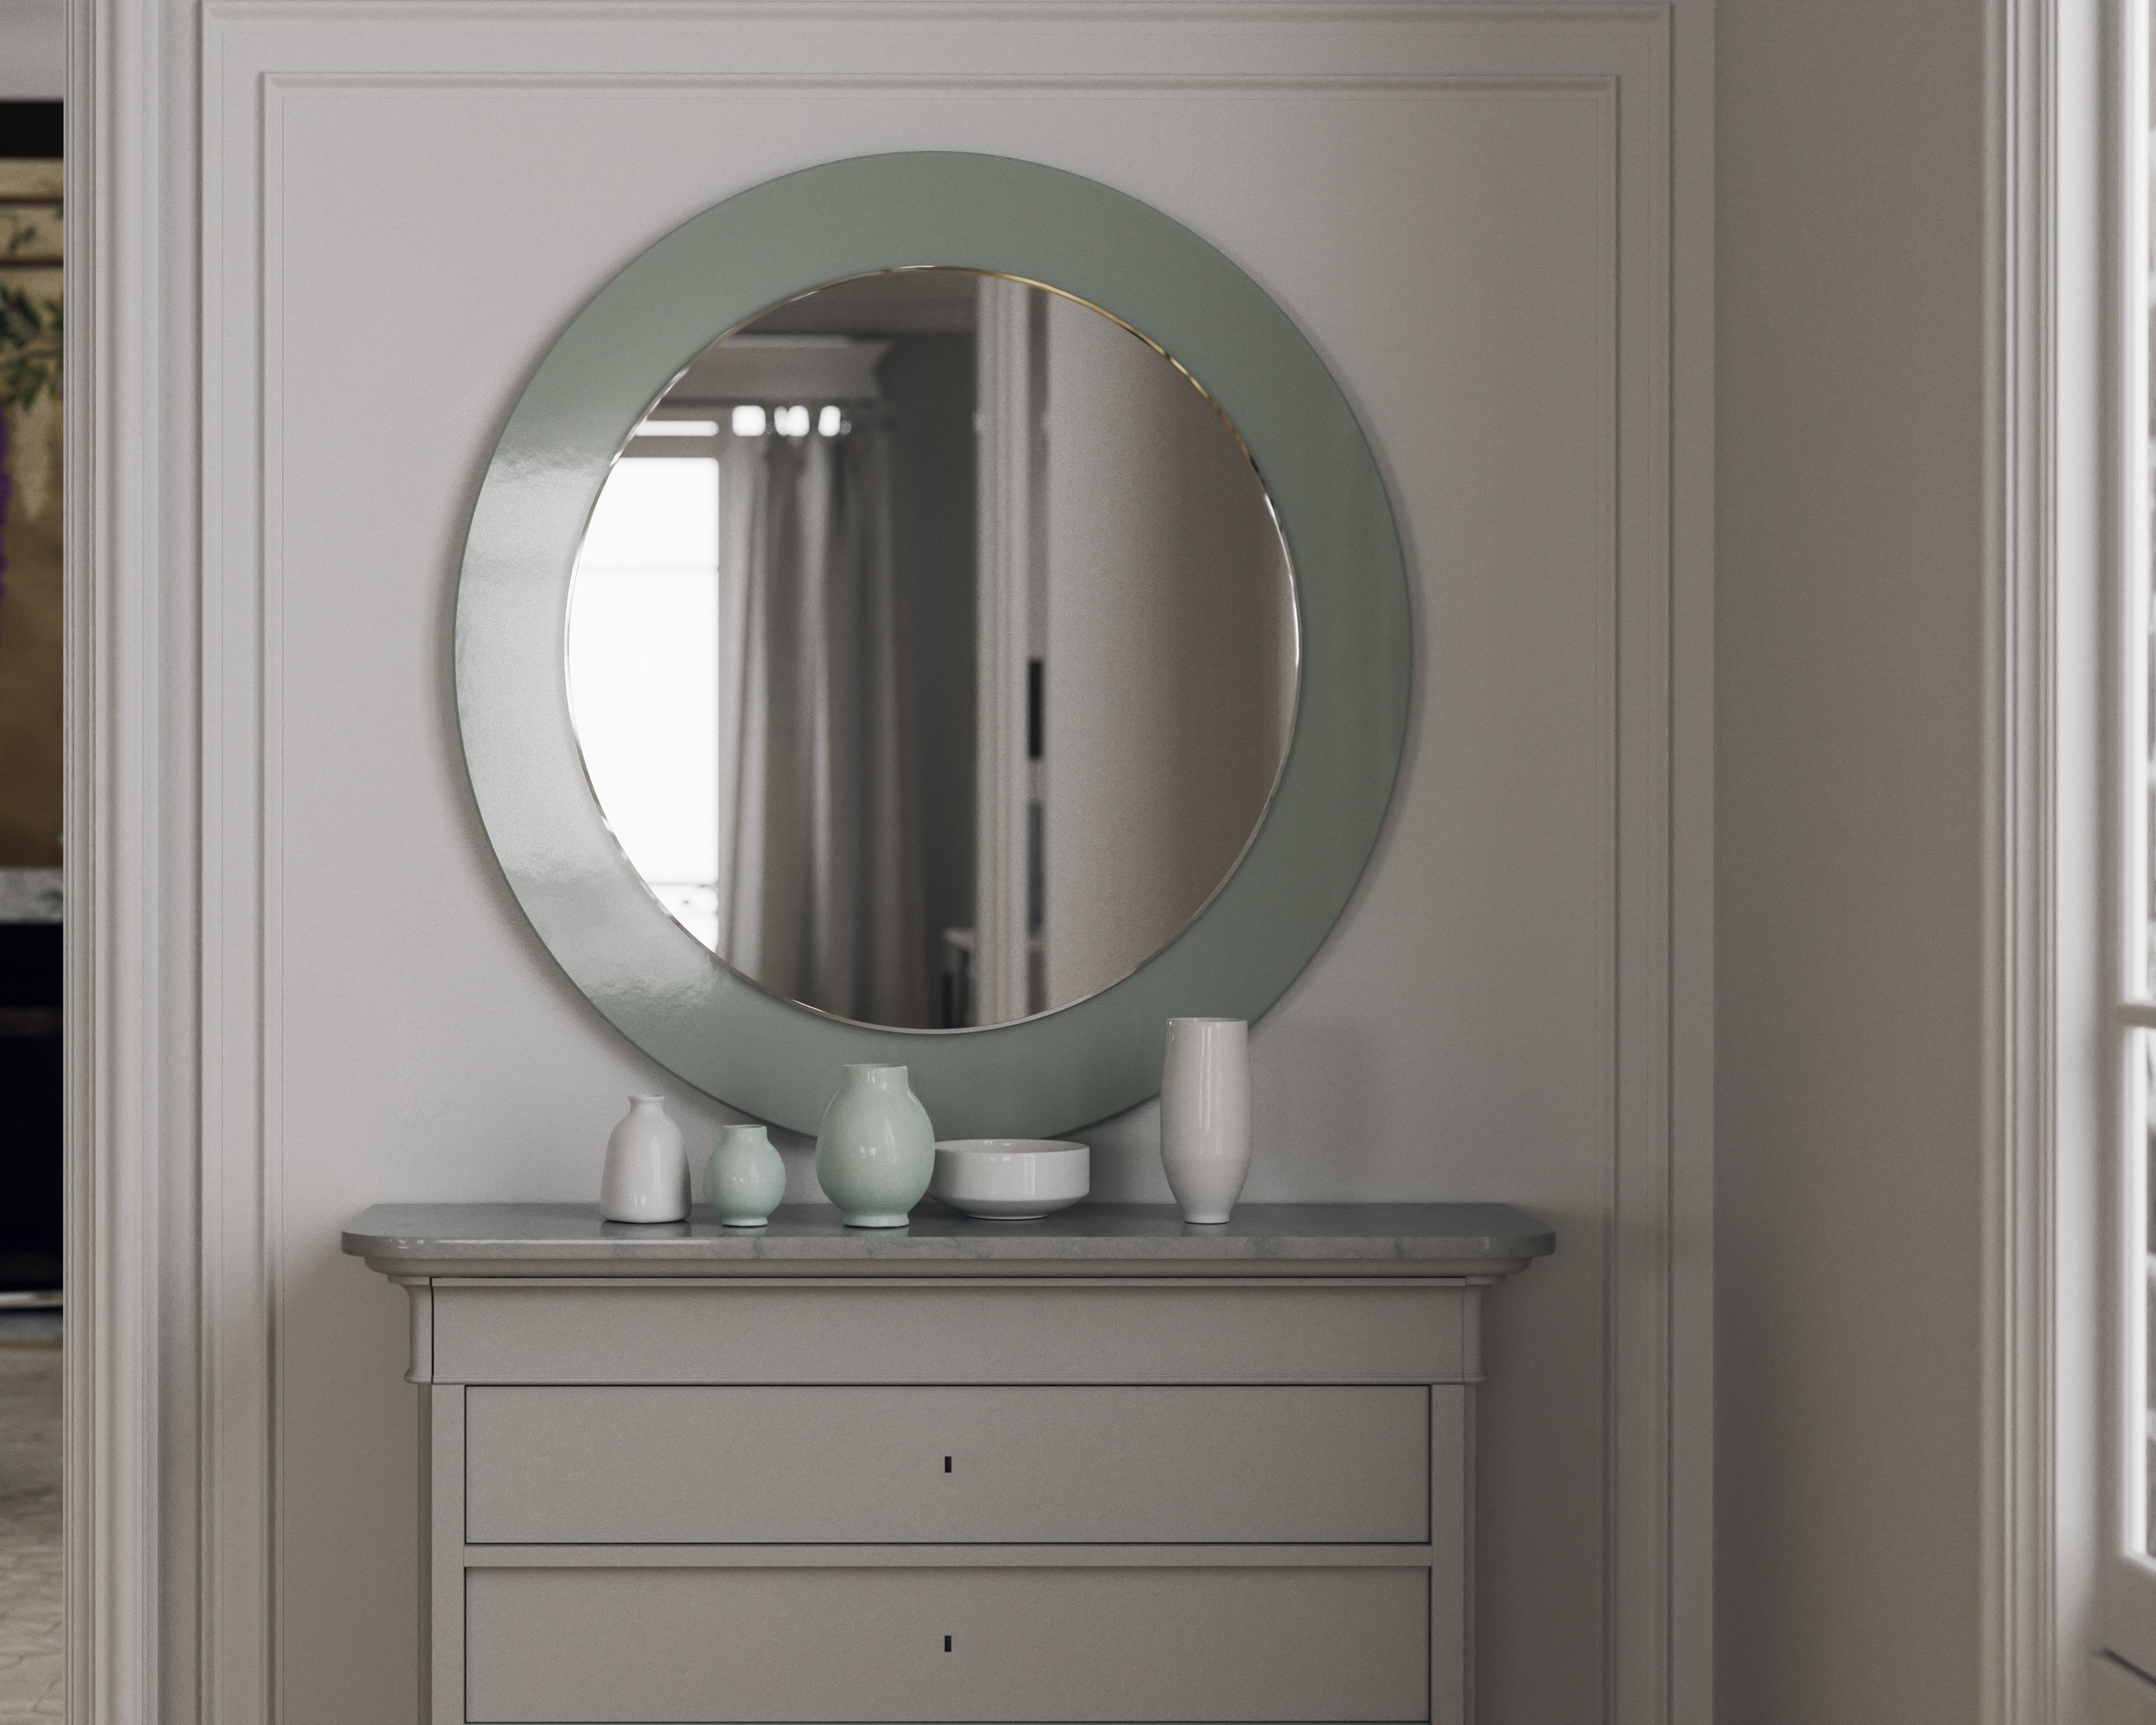 Full view of green Round Mirror